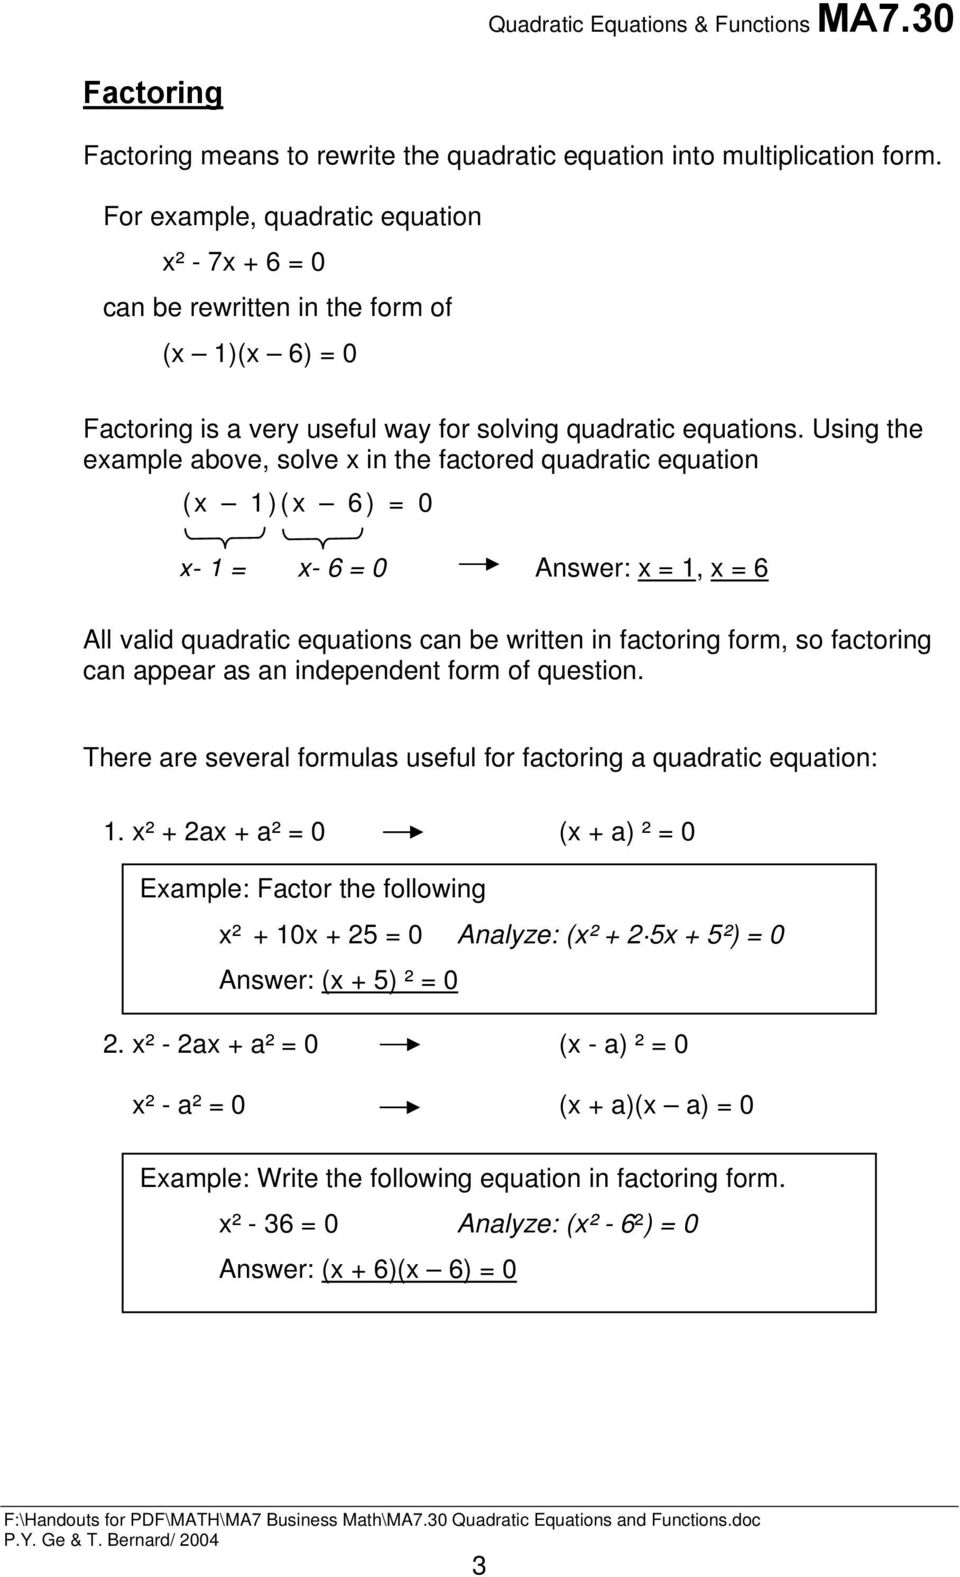 hight resolution of QUADRATIC EQUATIONS AND FUNCTIONS - PDF Free Download